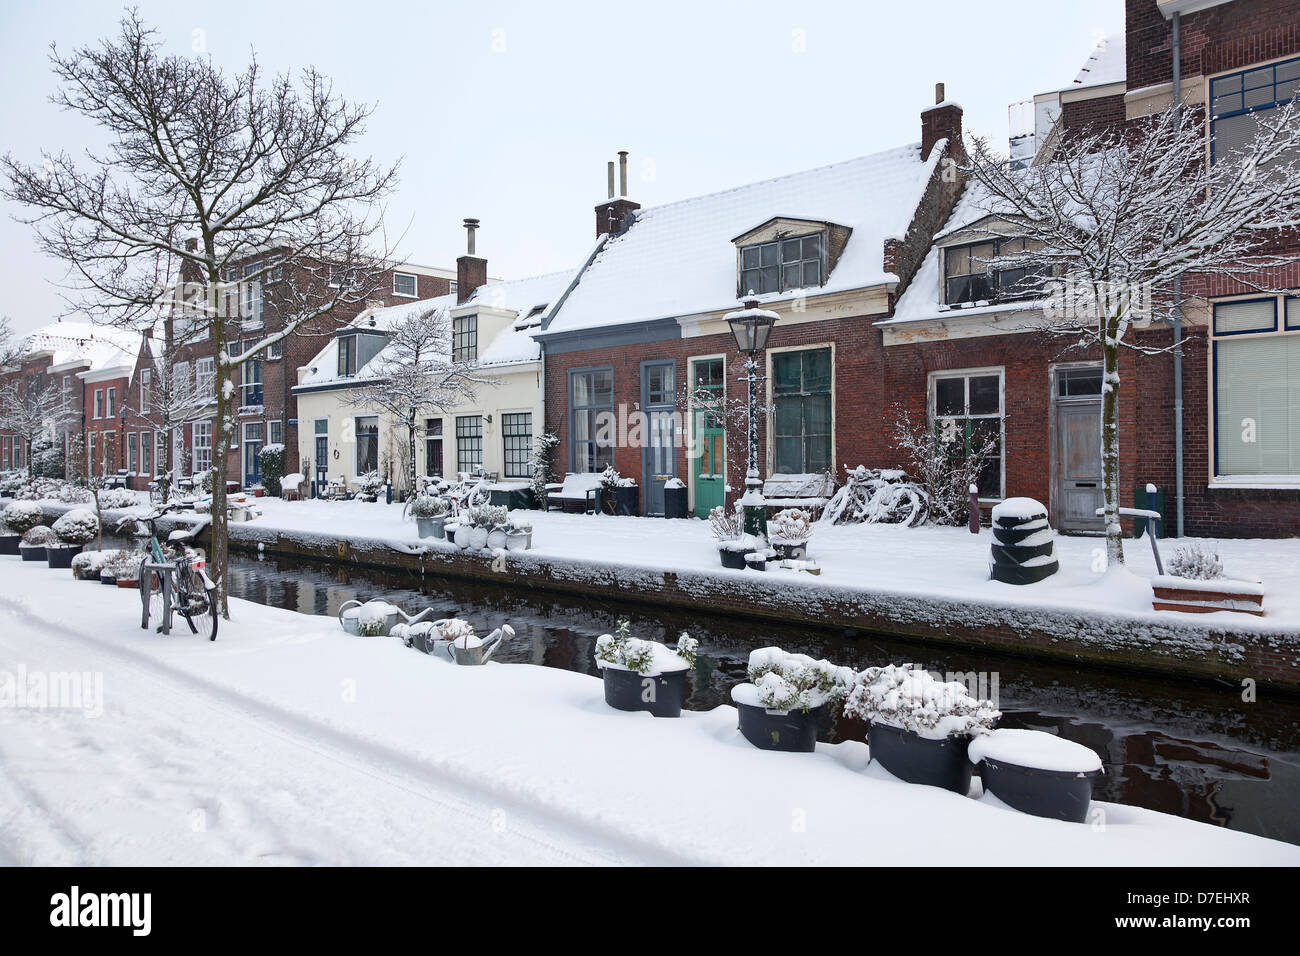 Snow in the city of Leiden, Holland - Stock Image